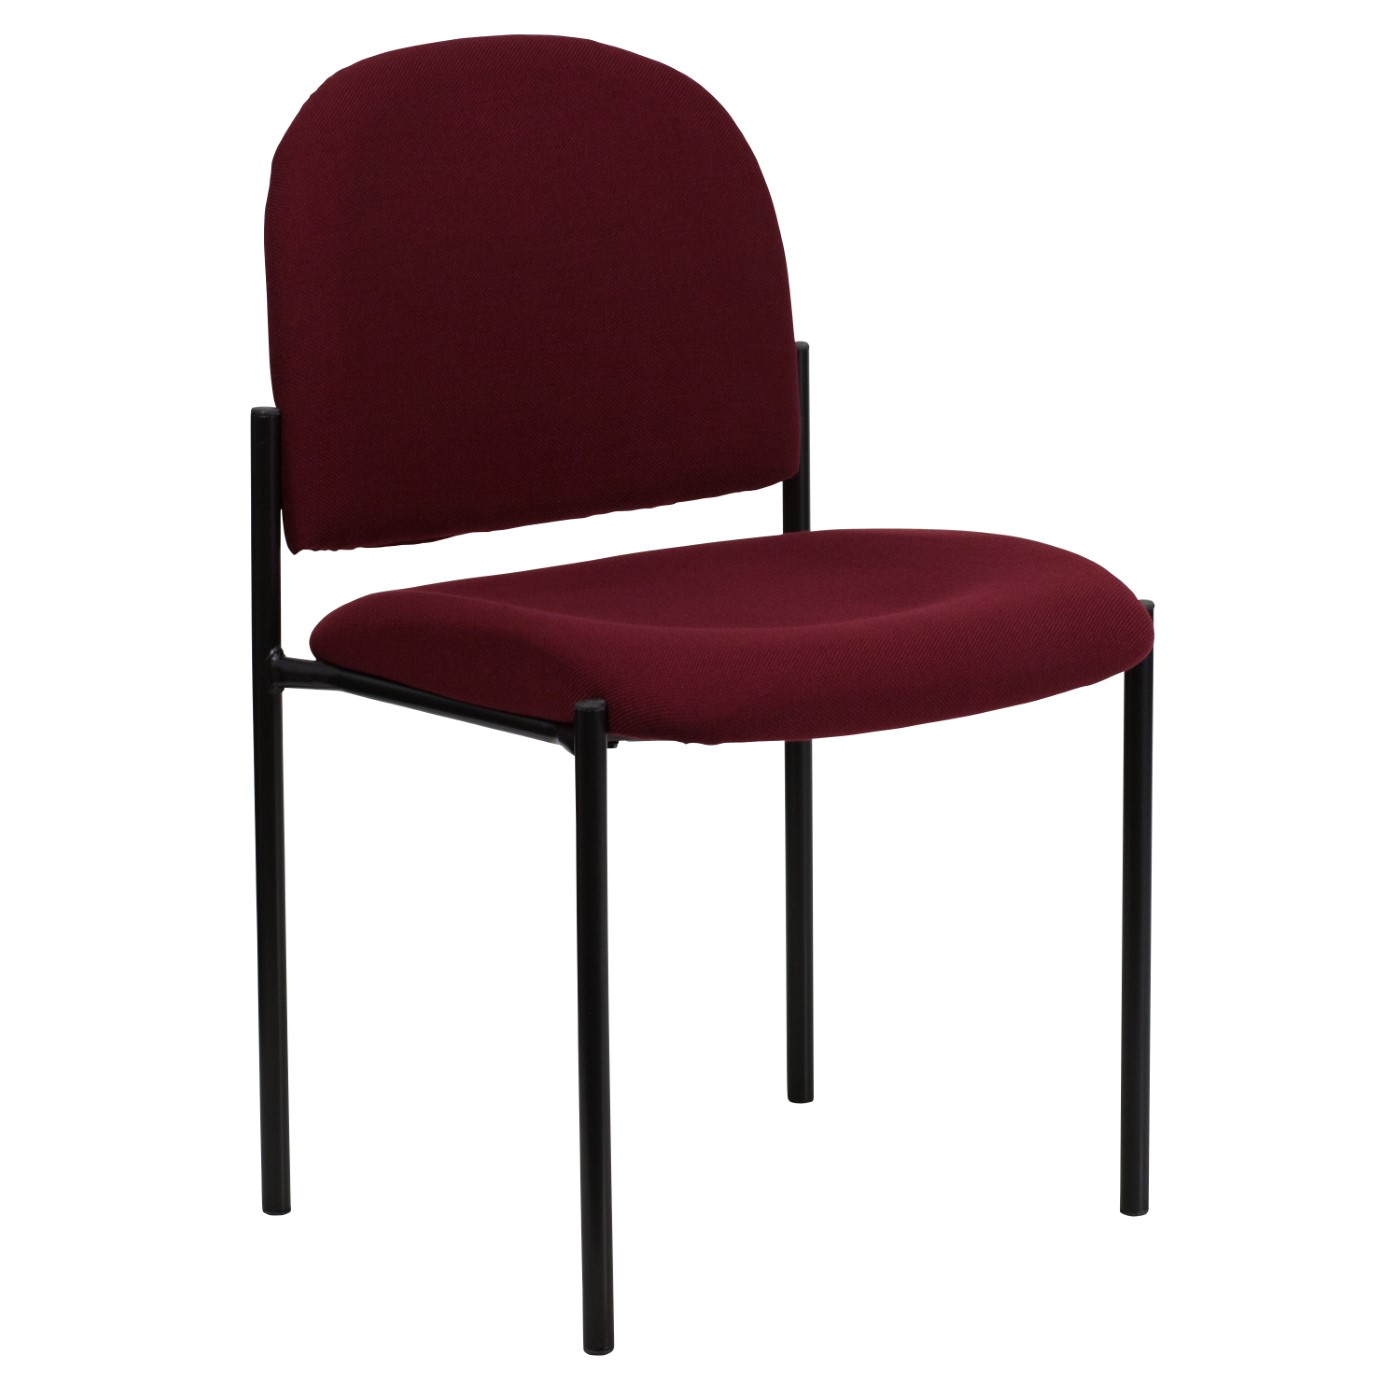 Comfort Burgundy Fabric Stackable Steel Side Reception Chair